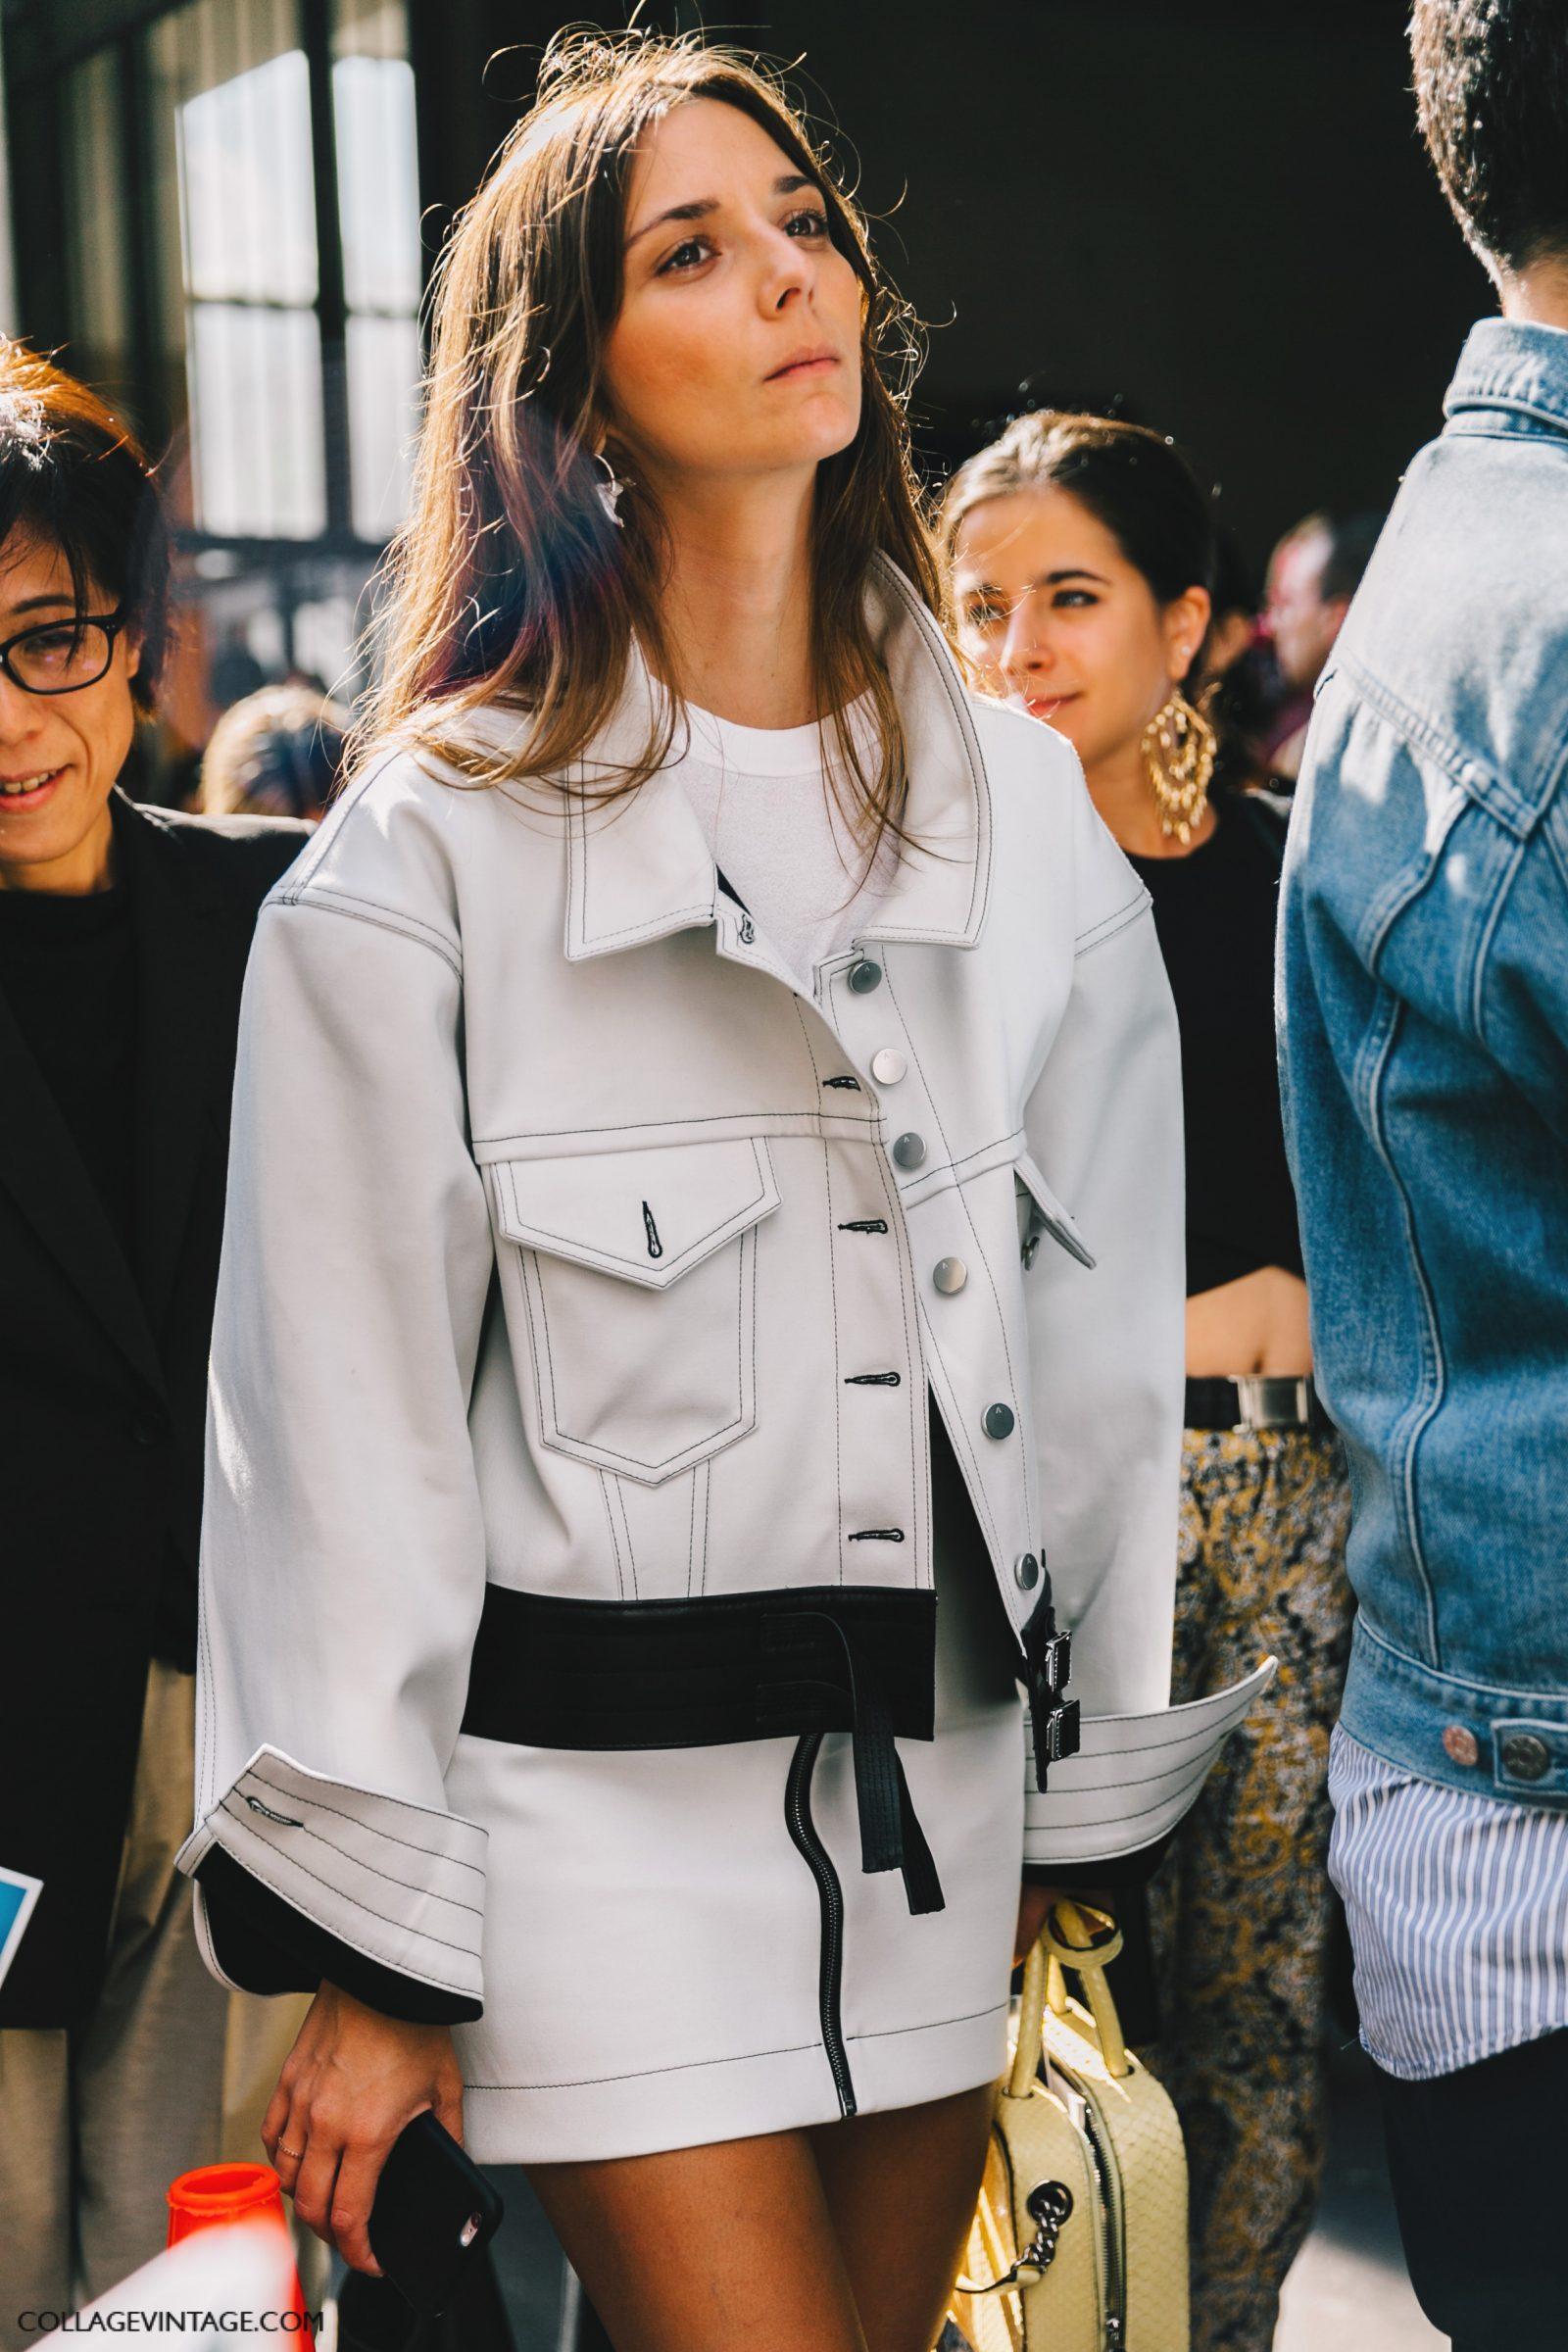 pfw-paris_fashion_week_ss17-street_style-outfits-collage_vintage-rochas-courreges-dries_van_noten-lanvin-guy_laroche-157